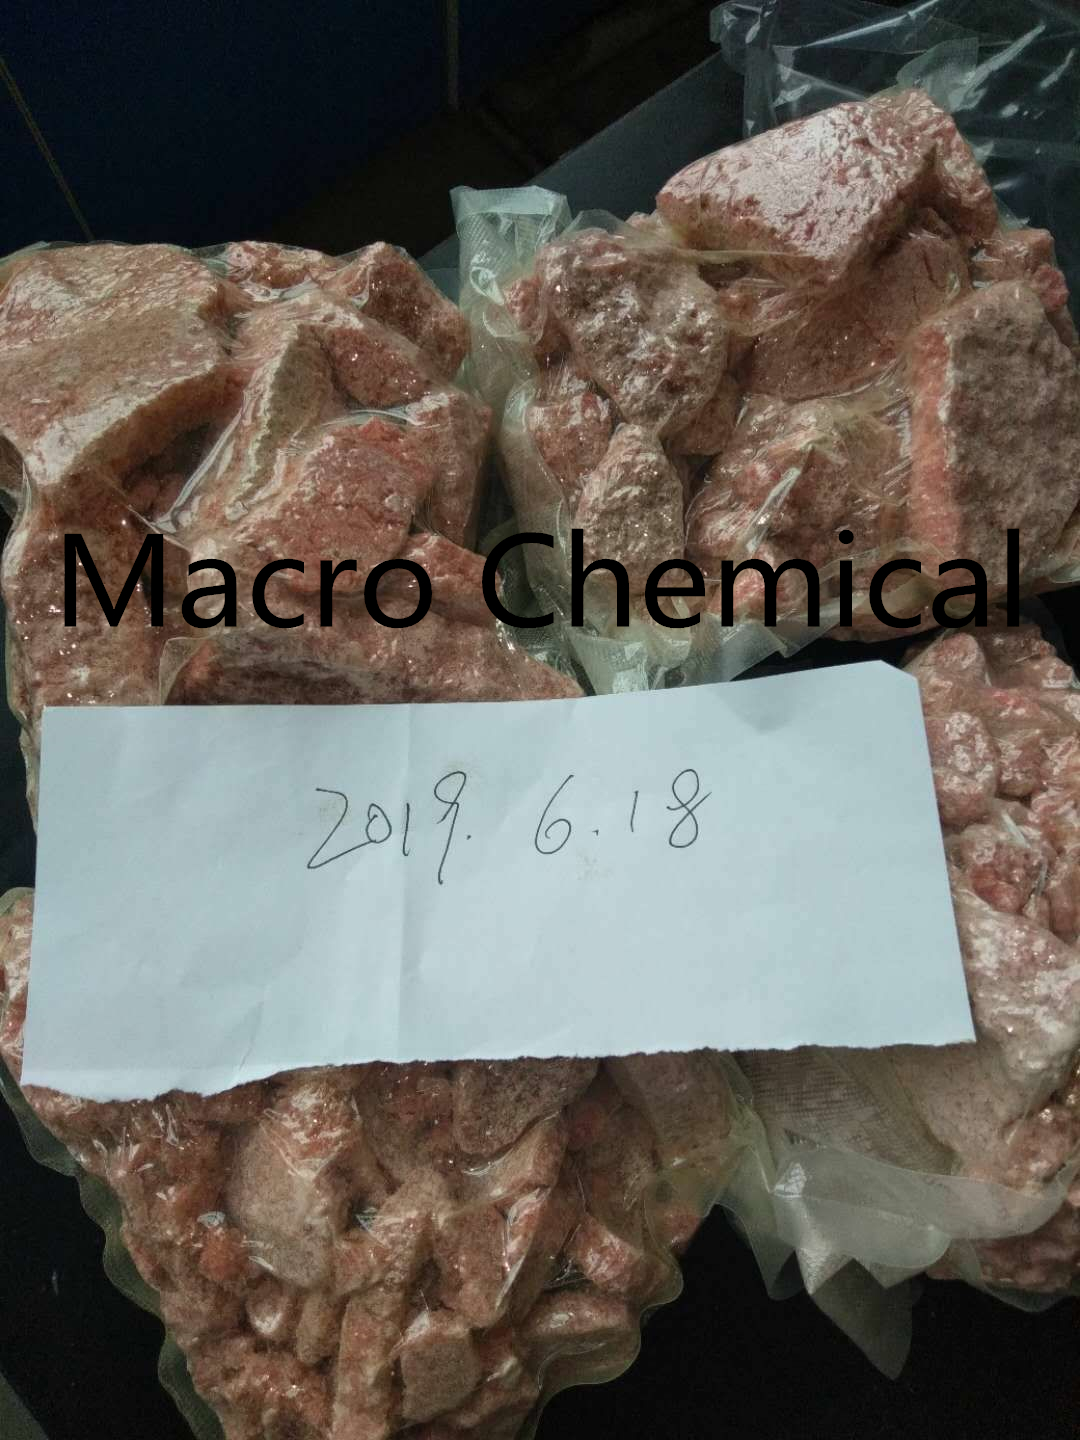 bmdp B-MDP Bmdp white or brown color safety stimulant Best price new BMDP bmdp crystal research chem